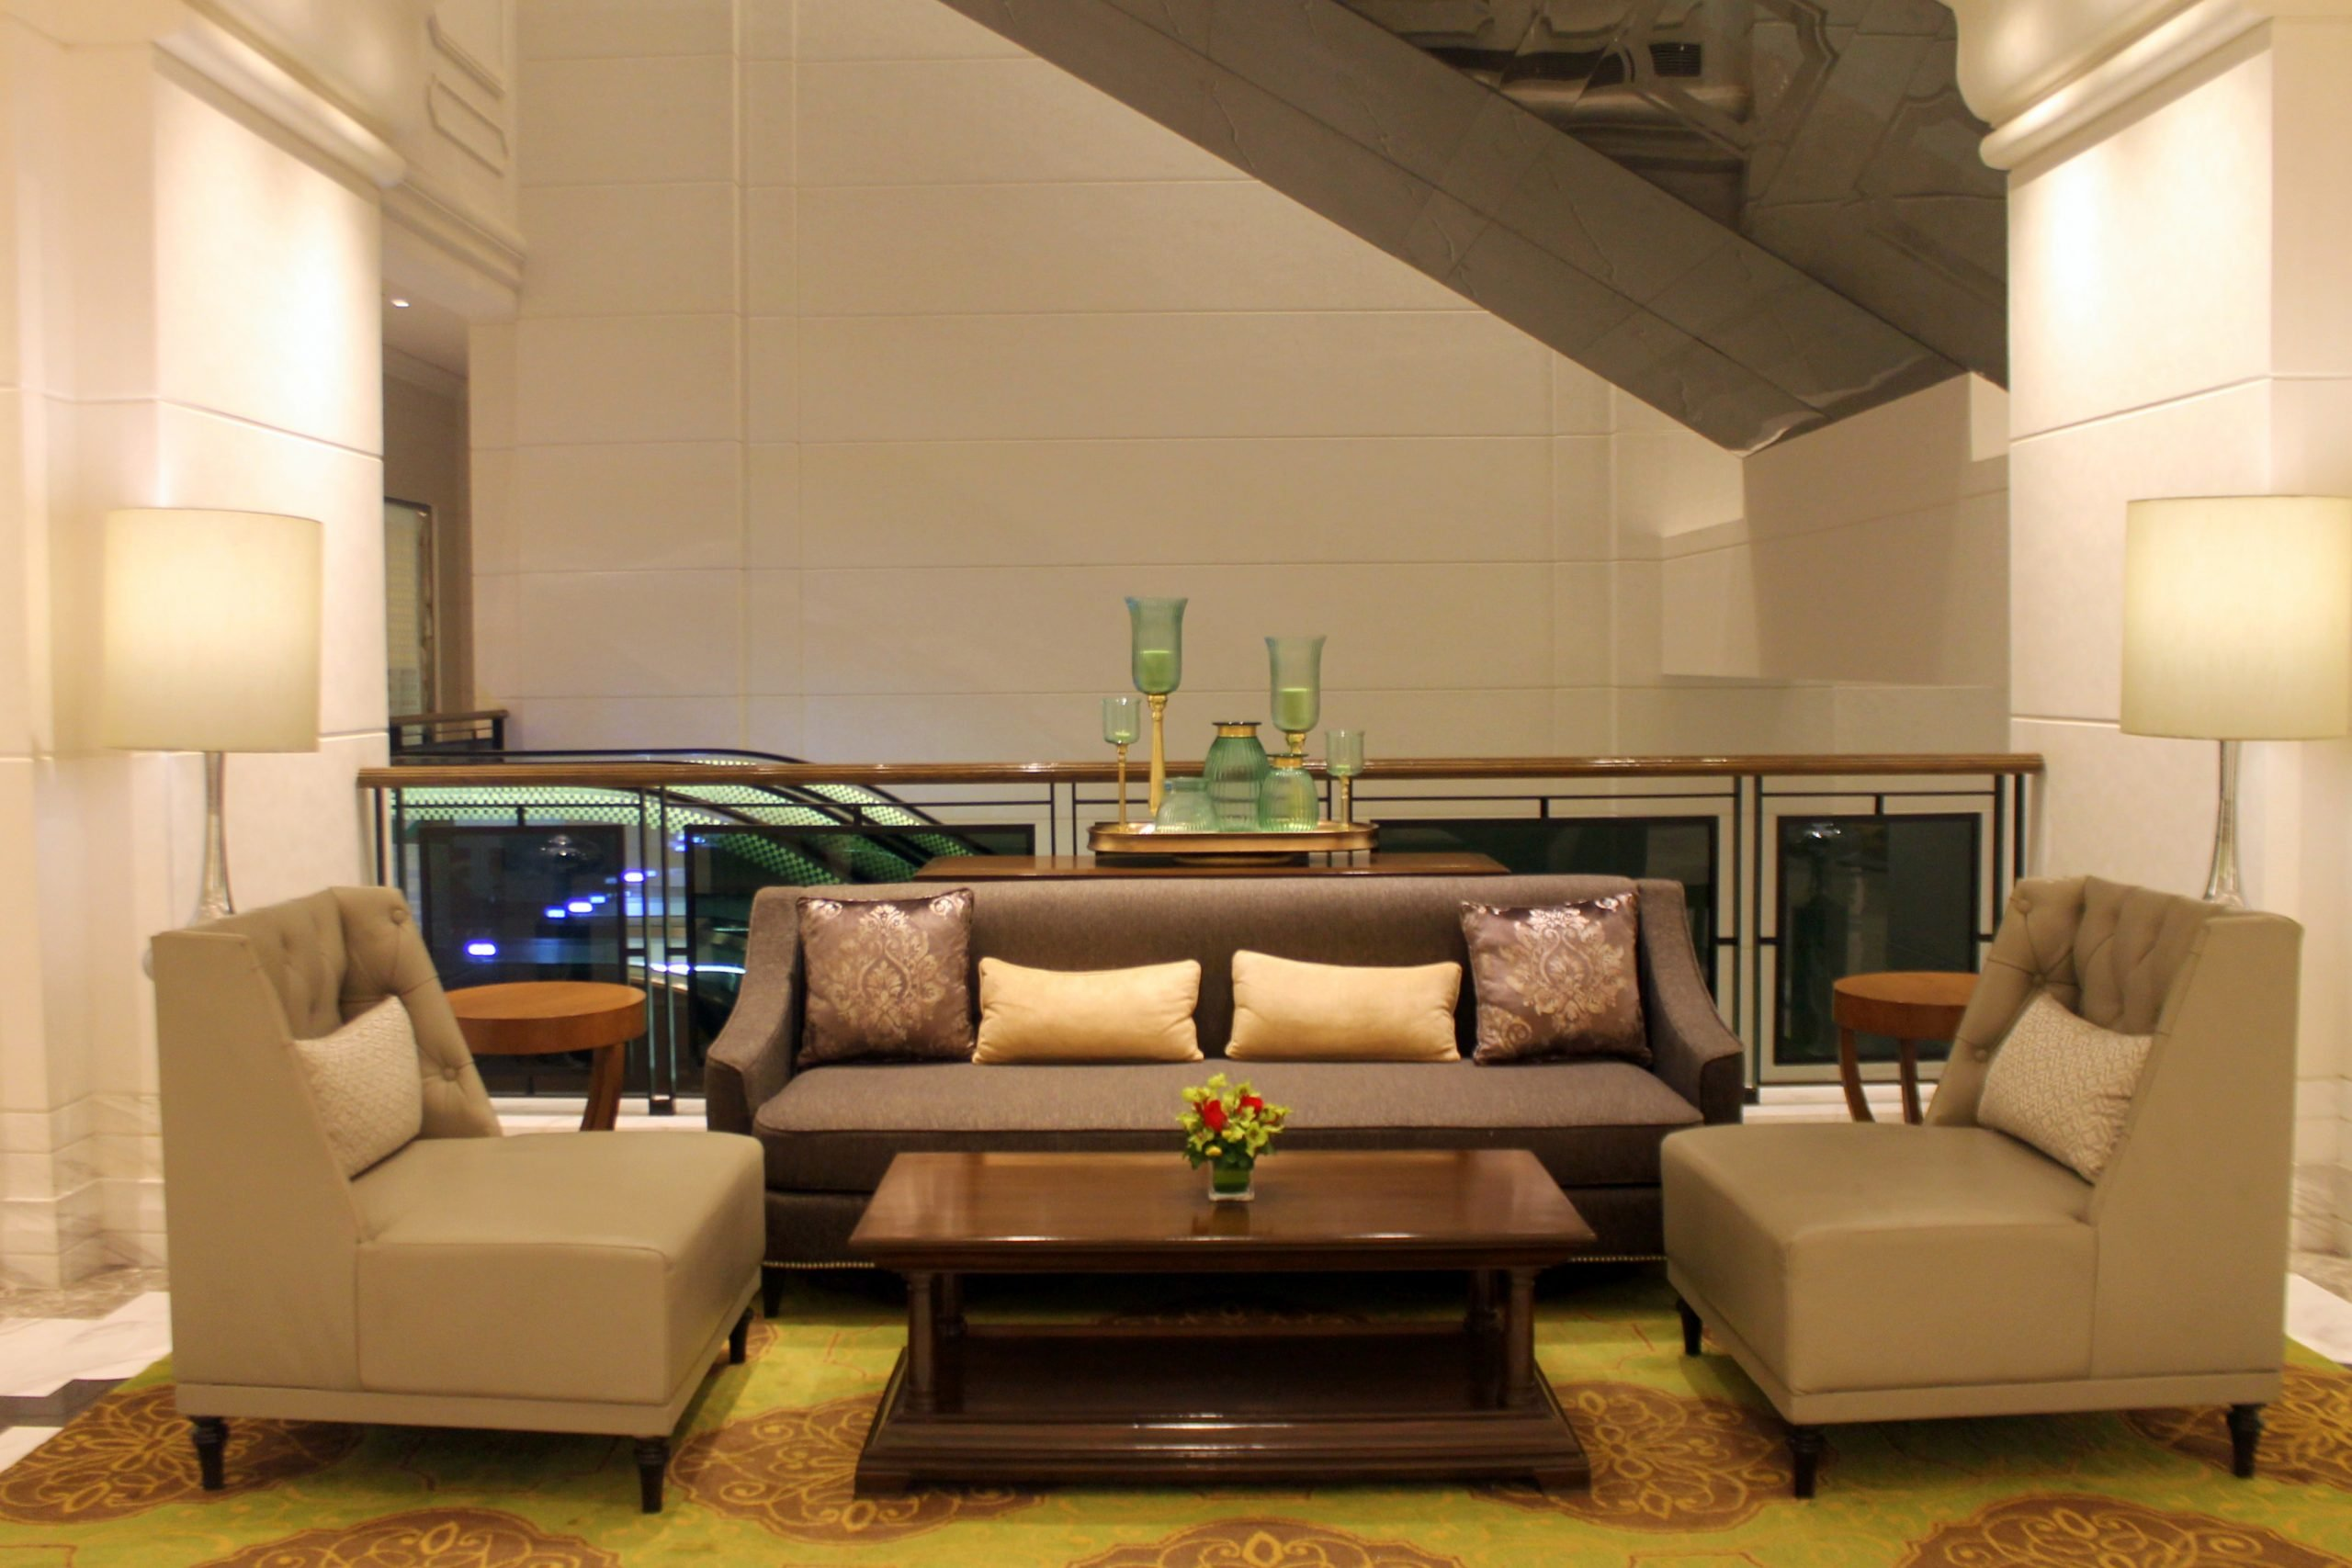 Luxury furniture in a room